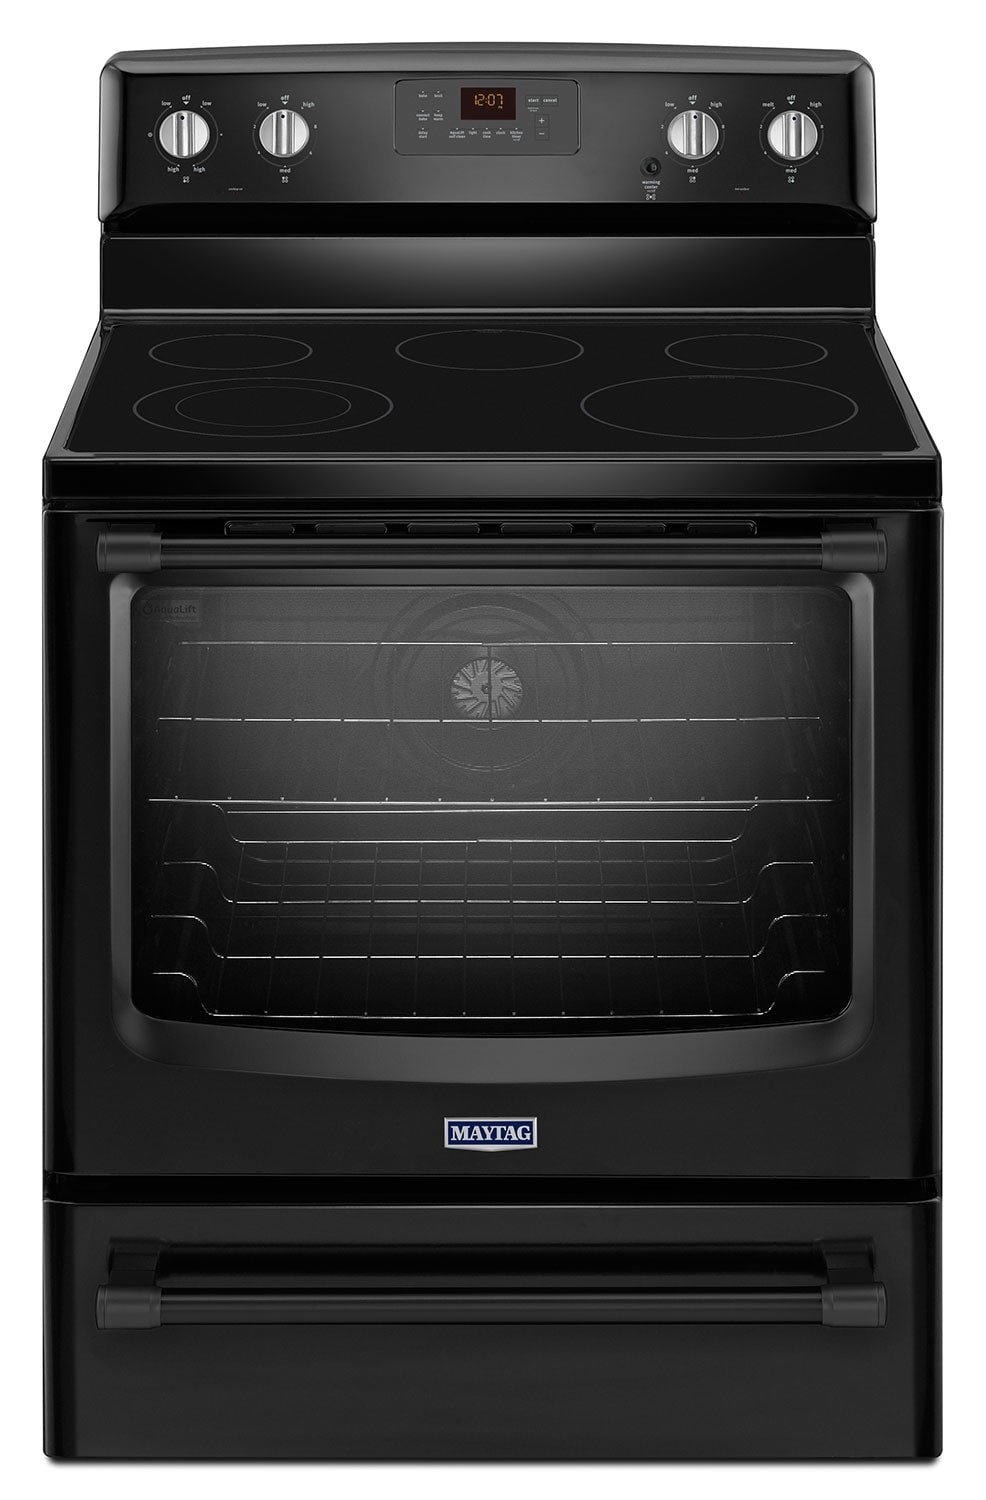 [Maytag Black Freestanding Electric Convection Range (6.2 Cu. Ft.) - YMER8700DB]